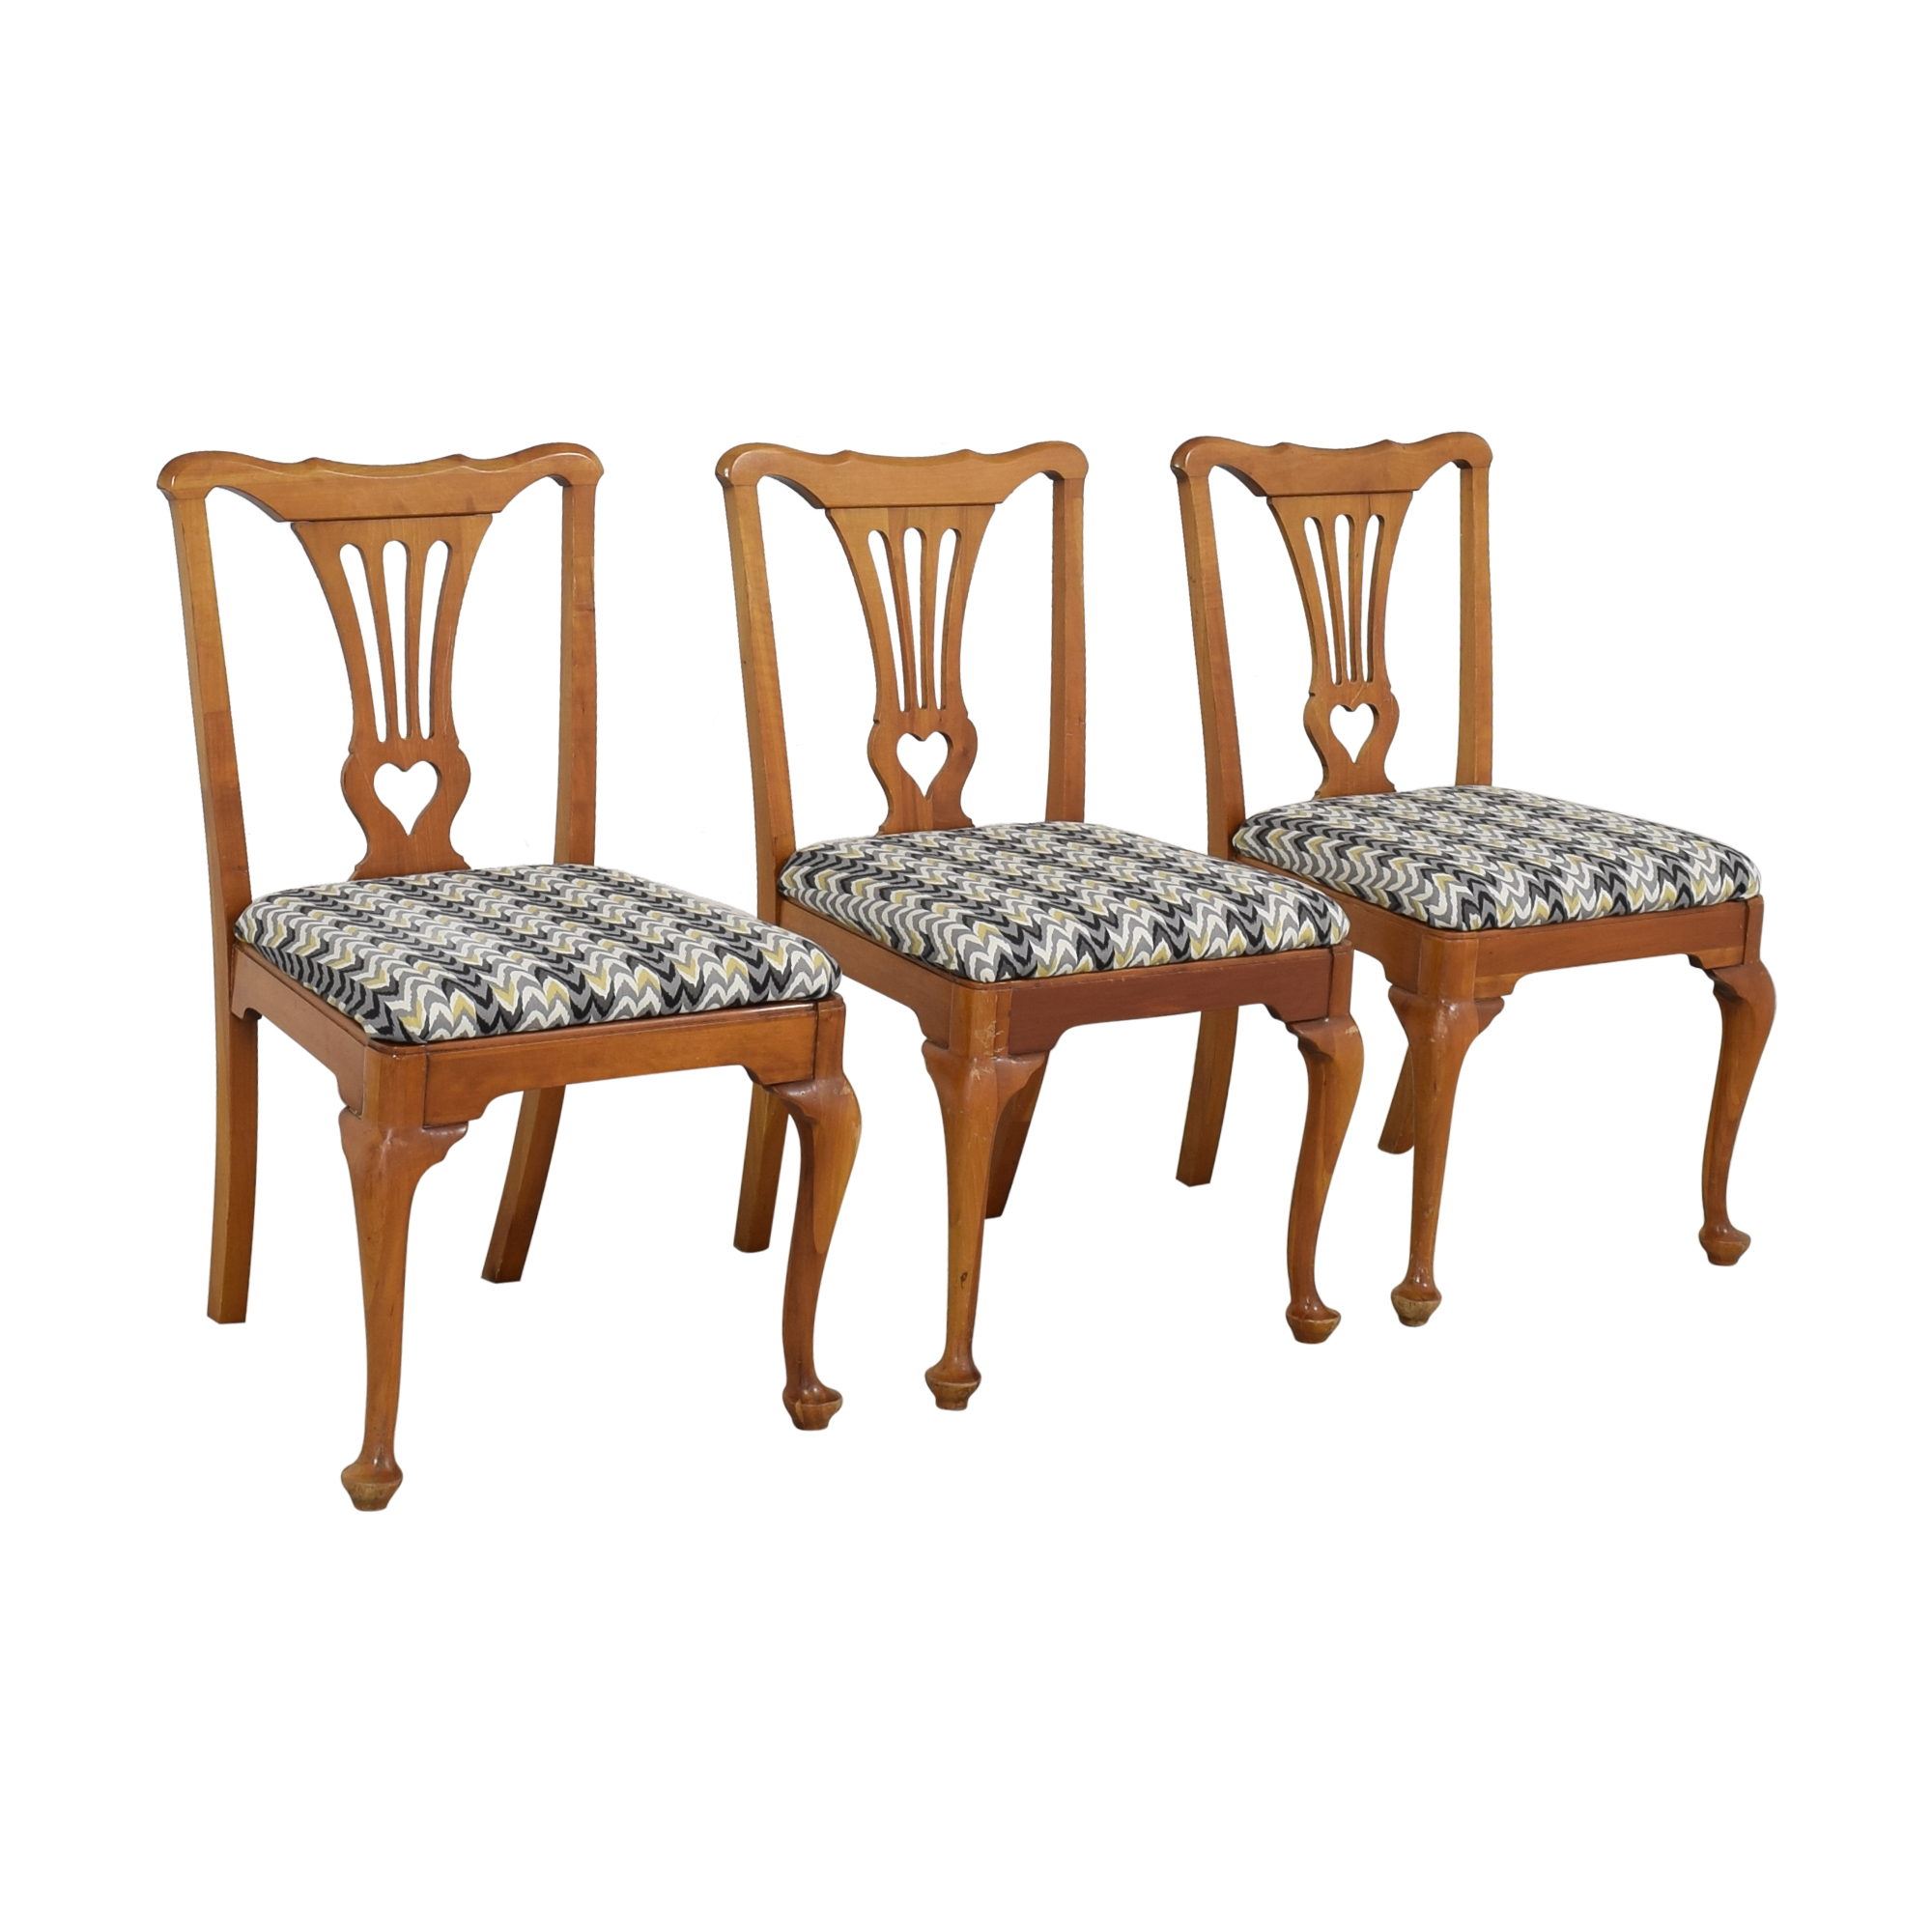 Queen Anne Style Dining Chairs used